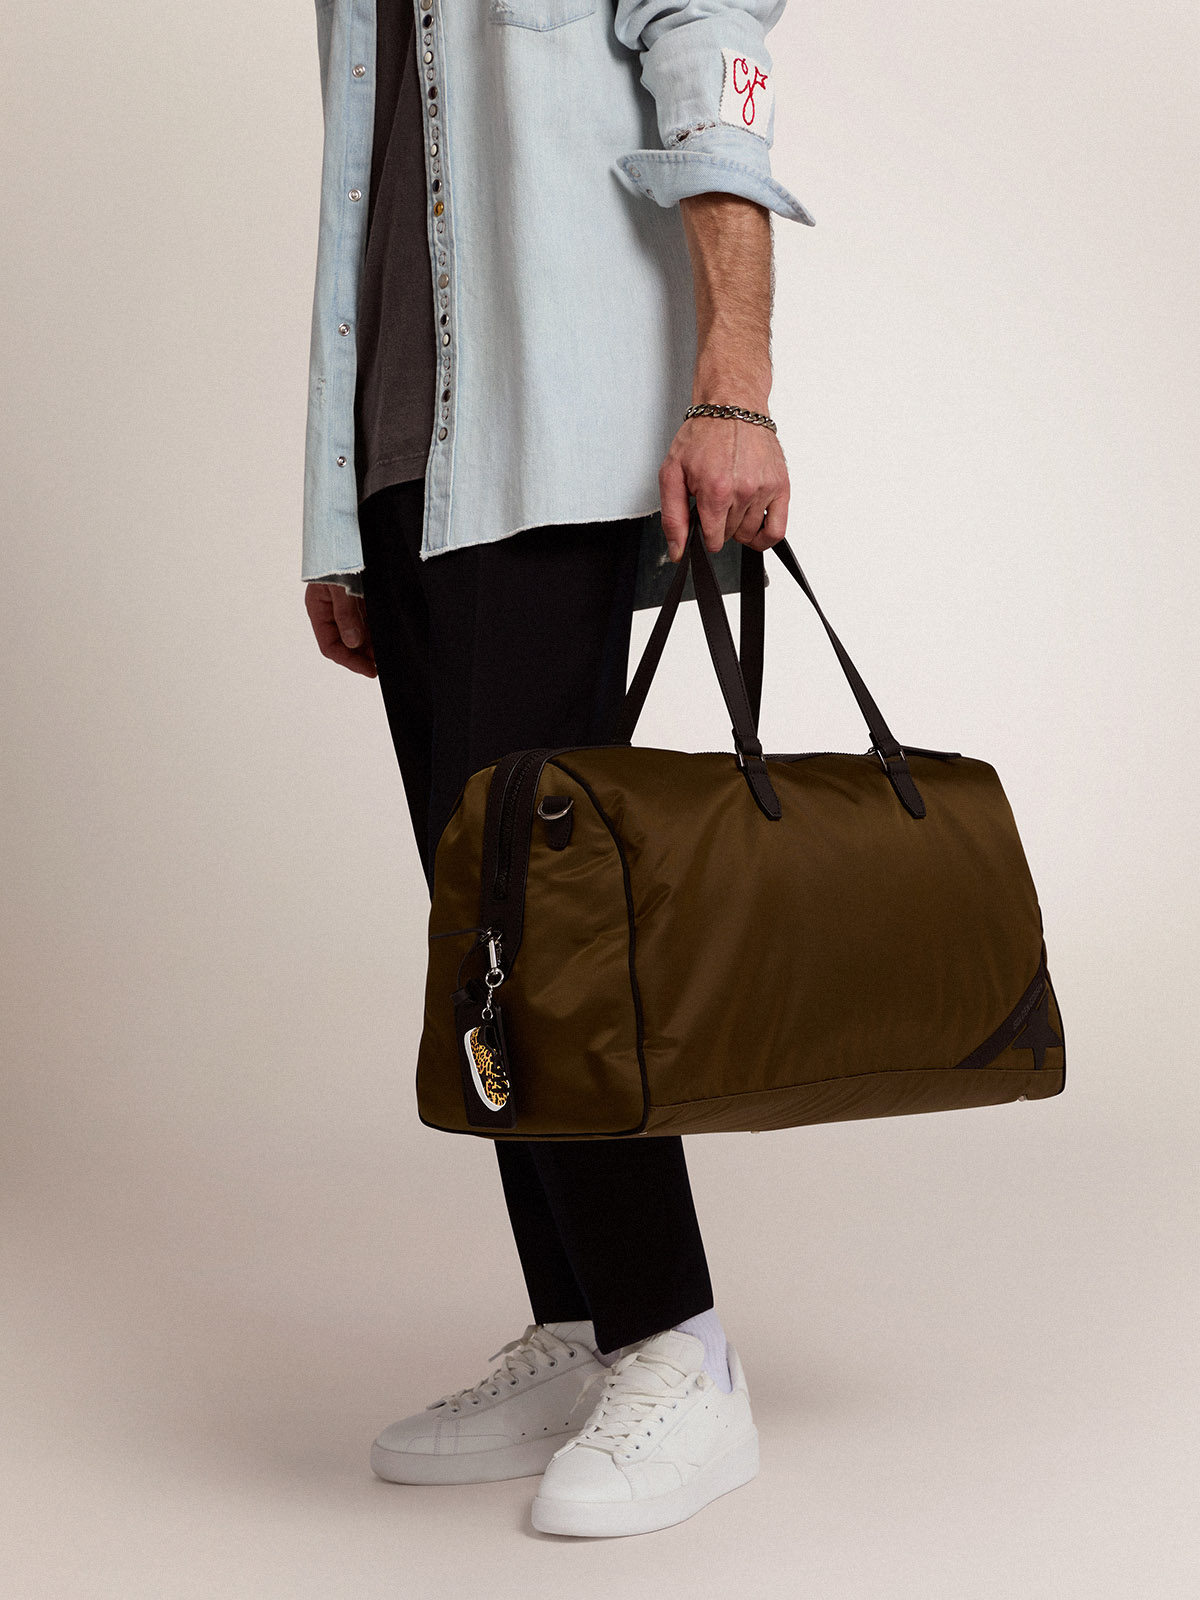 Golden Goose - Journey Duffle Bag in military-green nylon in